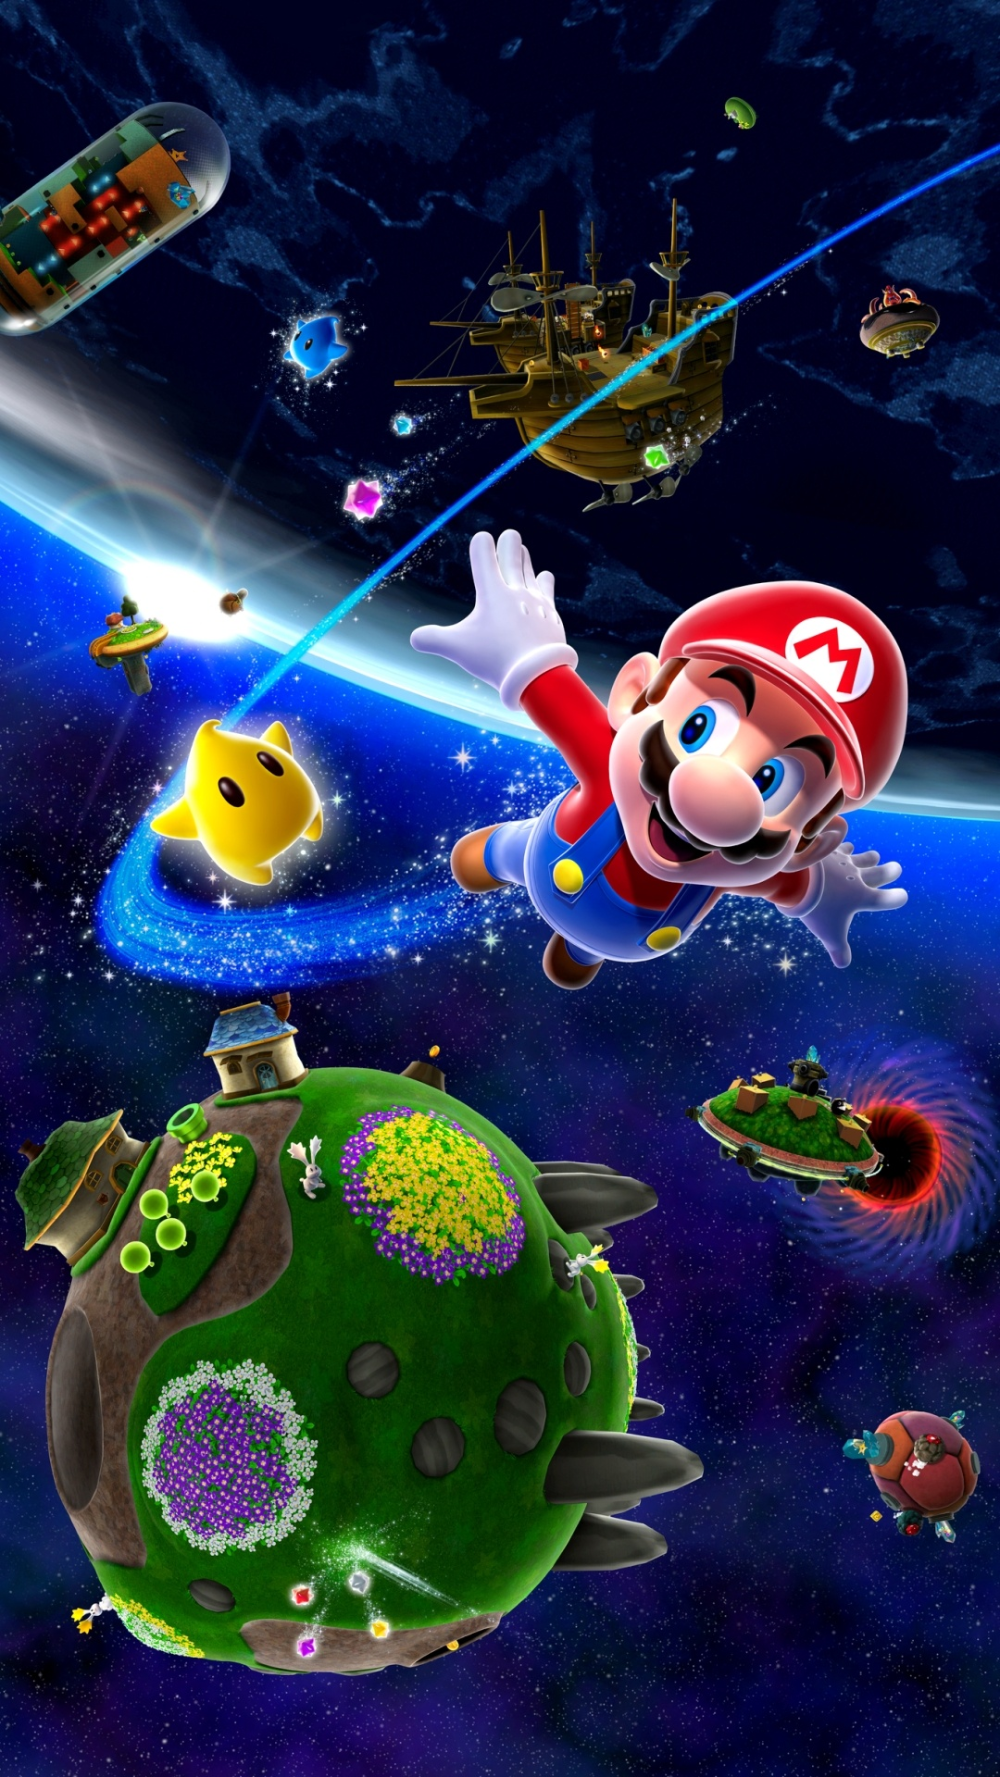 Pin By Best Of Wallpaper 4k On Wallpaper For Android Super Mario Art Super Mario Galaxy Mario Bros